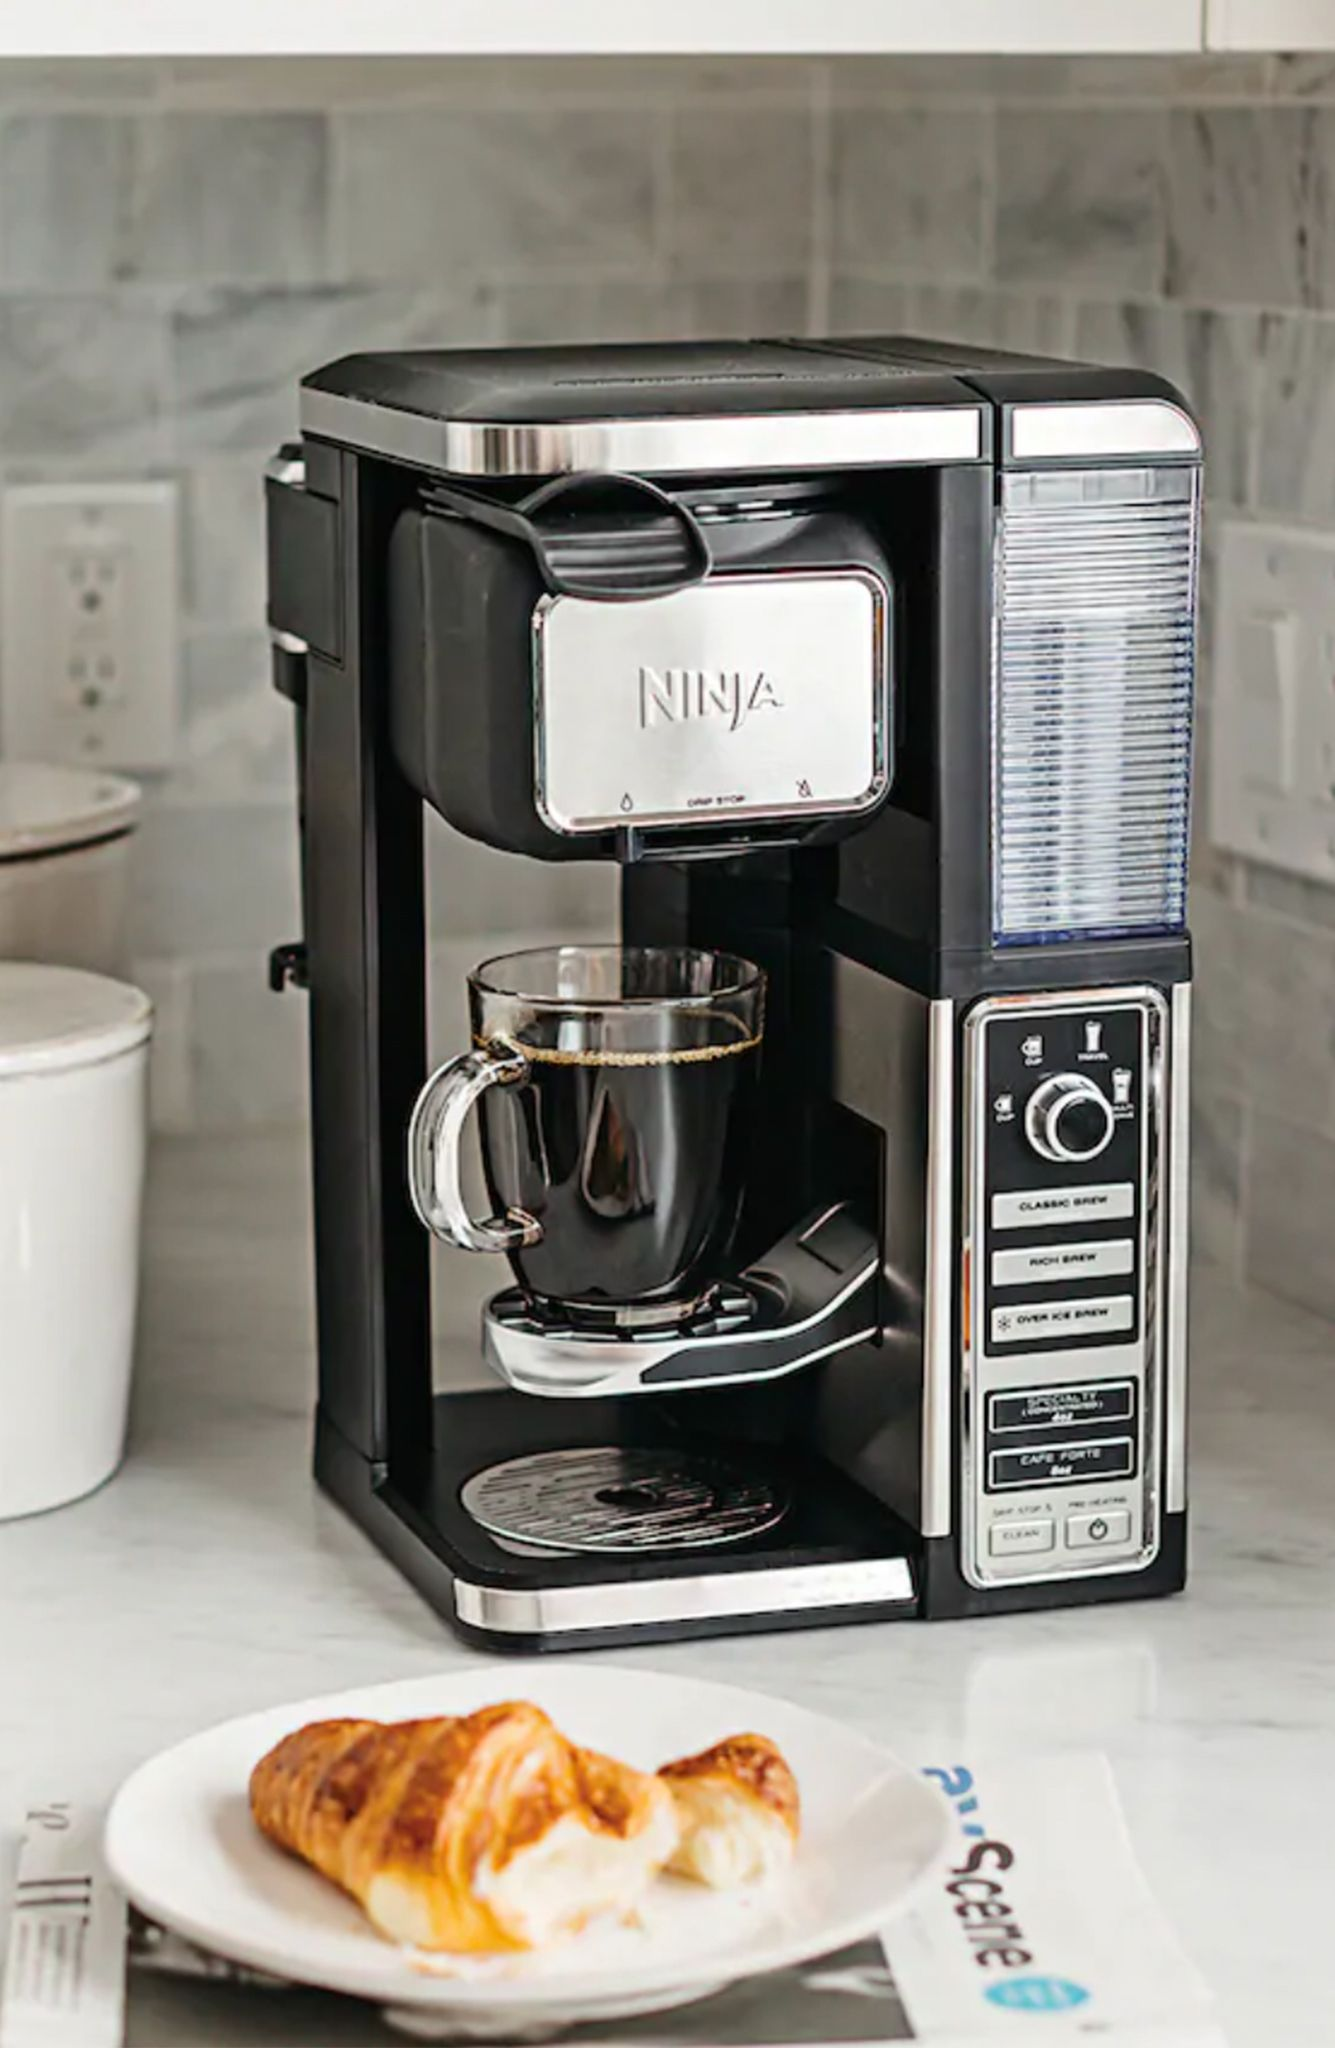 Ninja Coffee Bar SingleServe System Just 62.99 Shipped